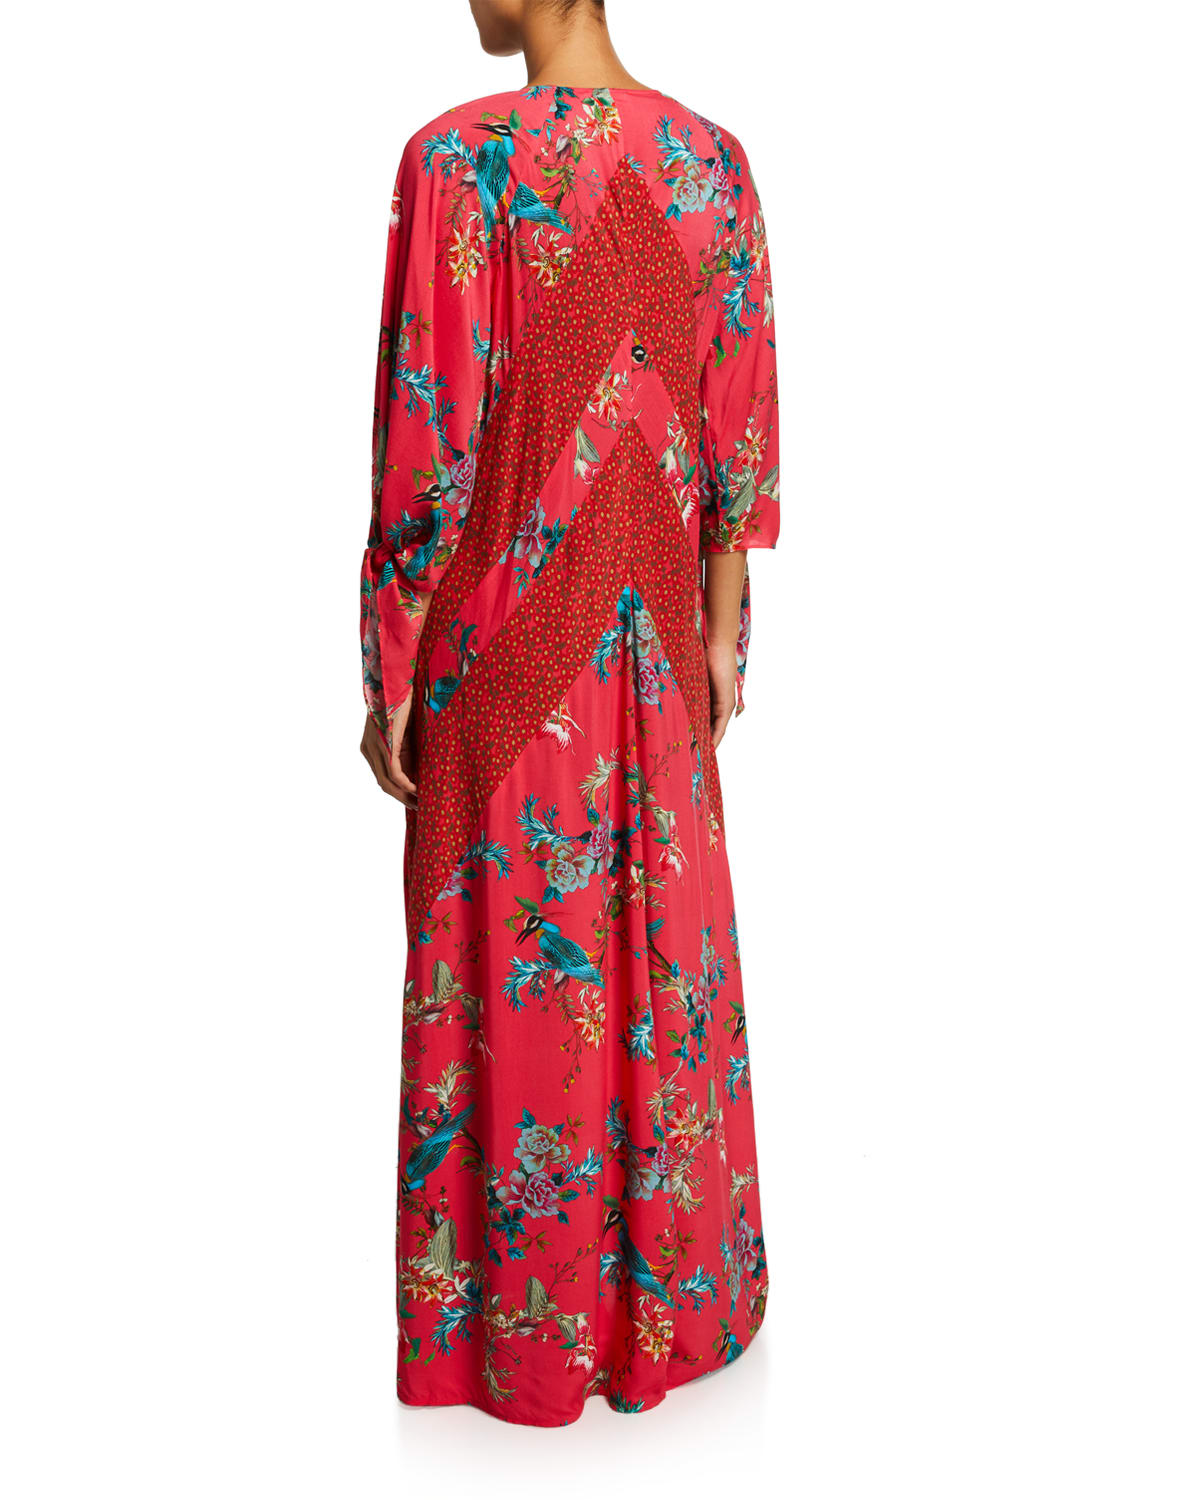 JOHNNY WAS Ties MALAKYE PANELED FLORAL-PRINT MAXI COVERUP